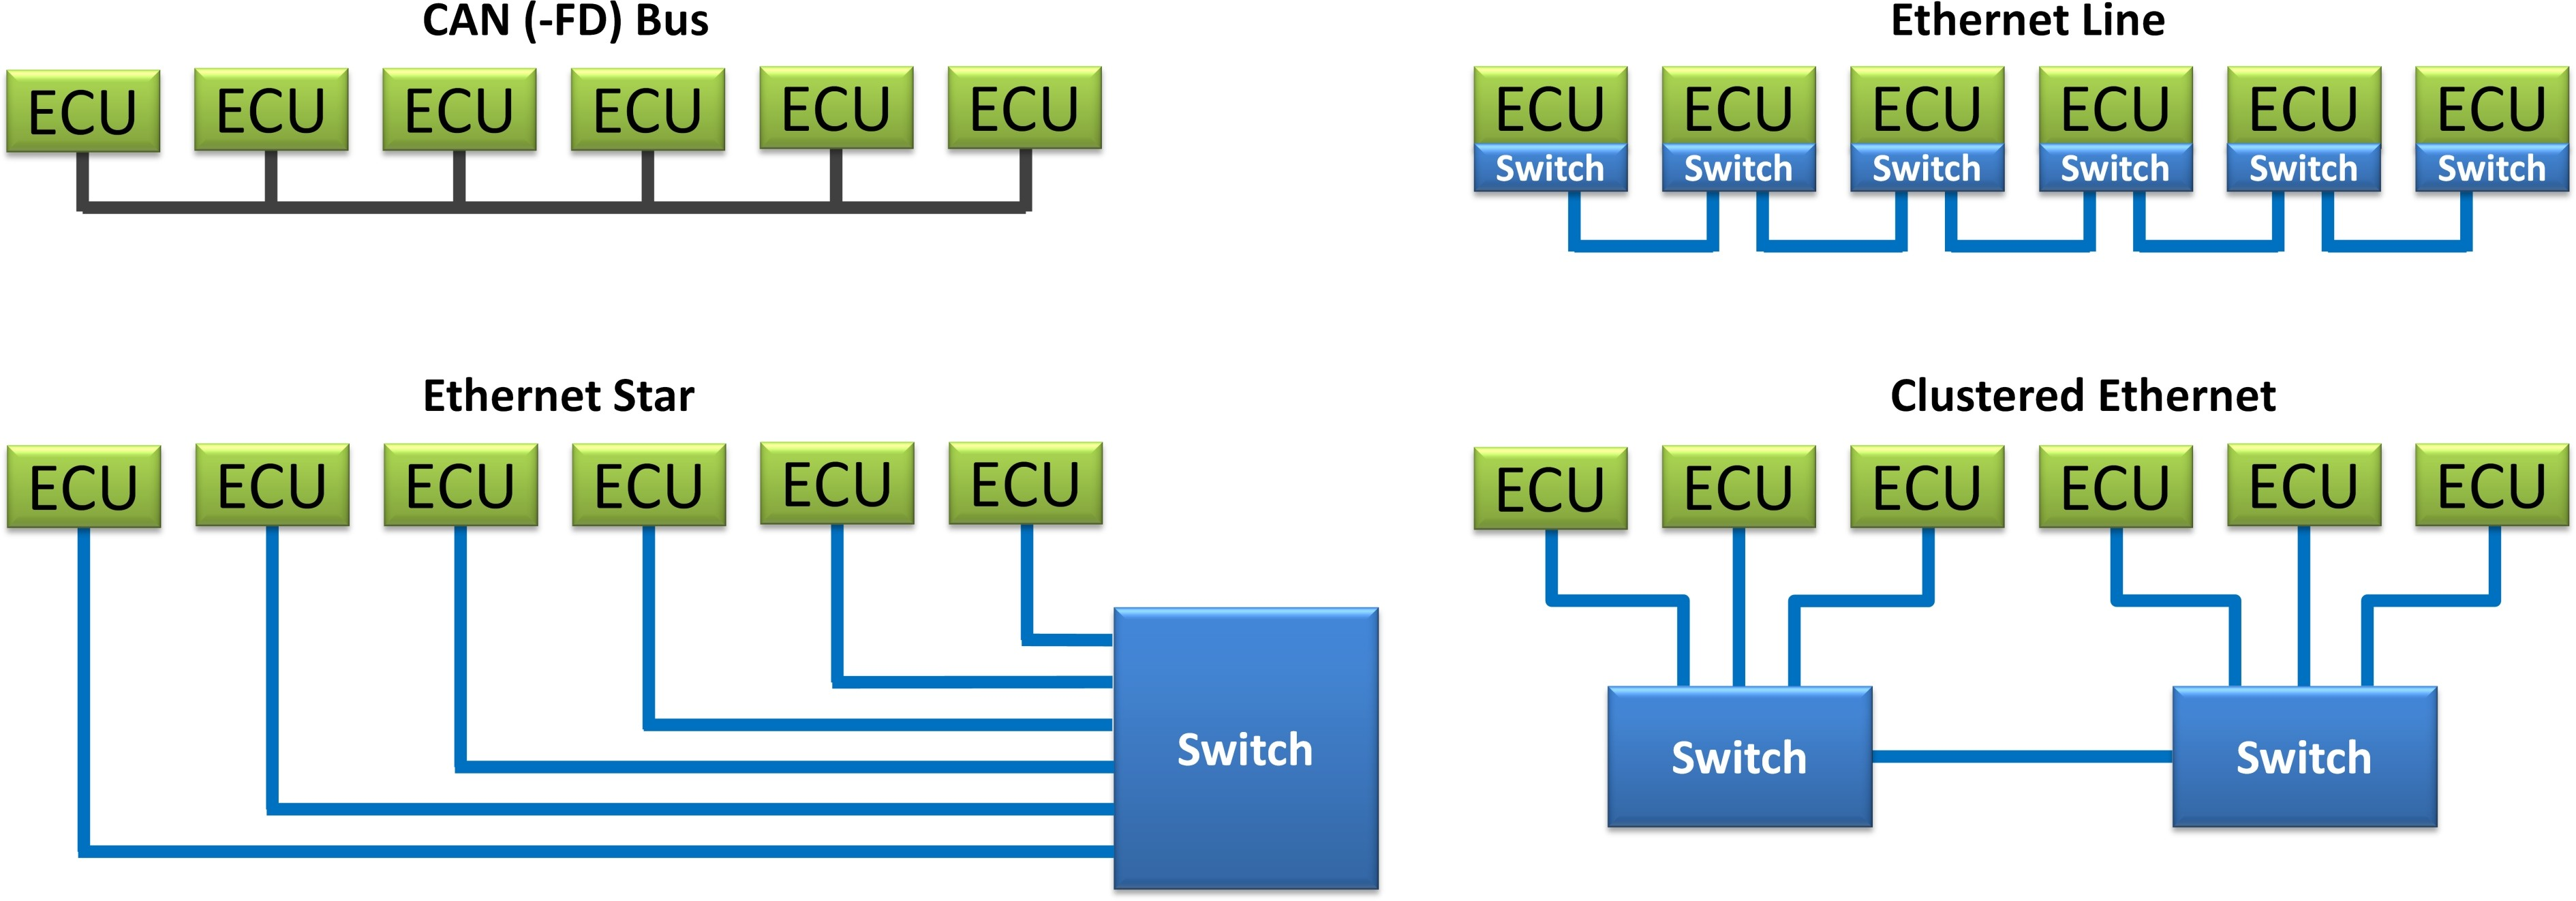 Automotive Air Conditioning >> Real-Time Automotive Ethernet